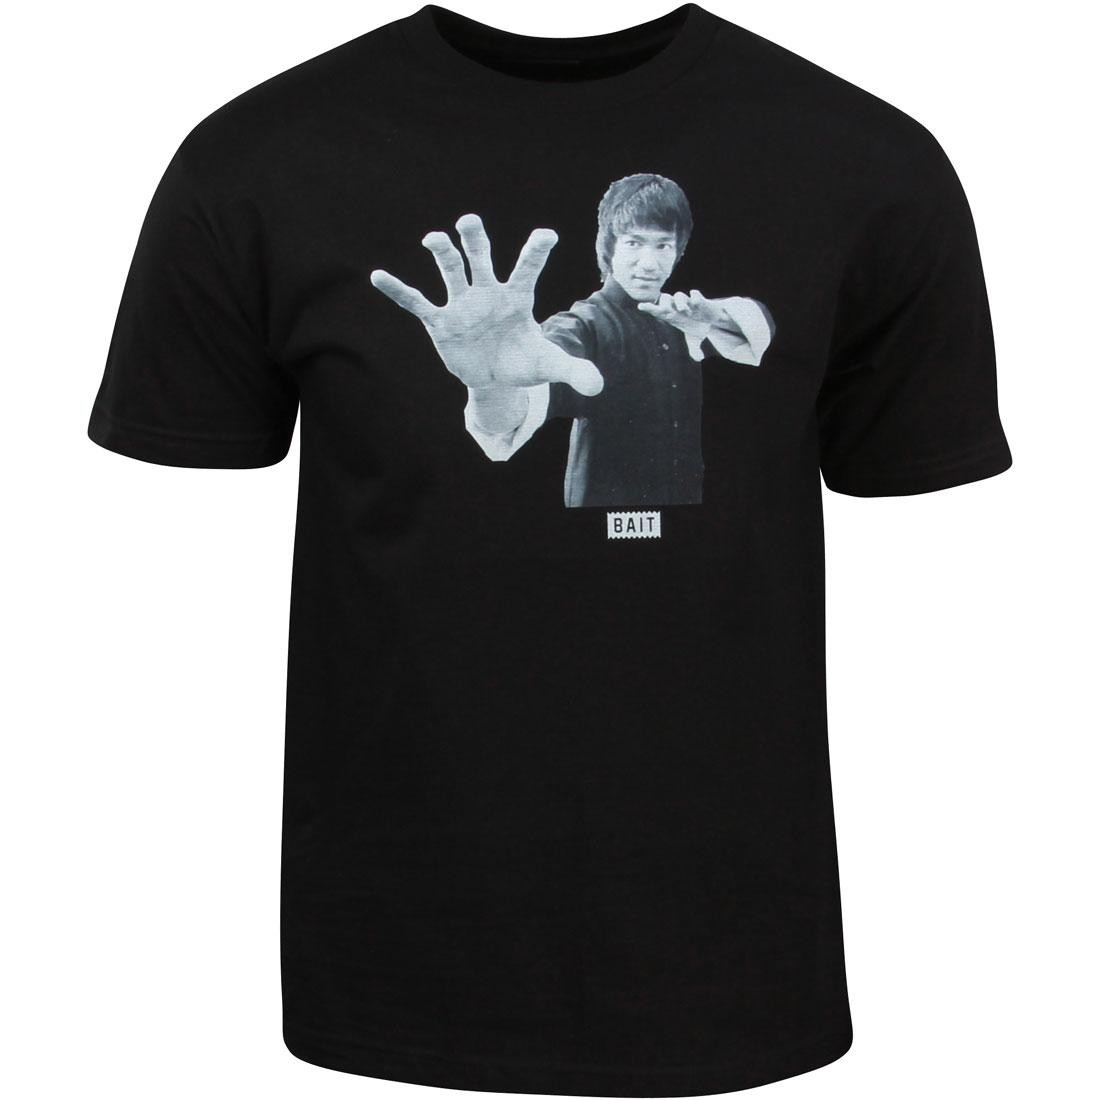 BAIT x Bruce Lee 75th Anniversary Tee (black)